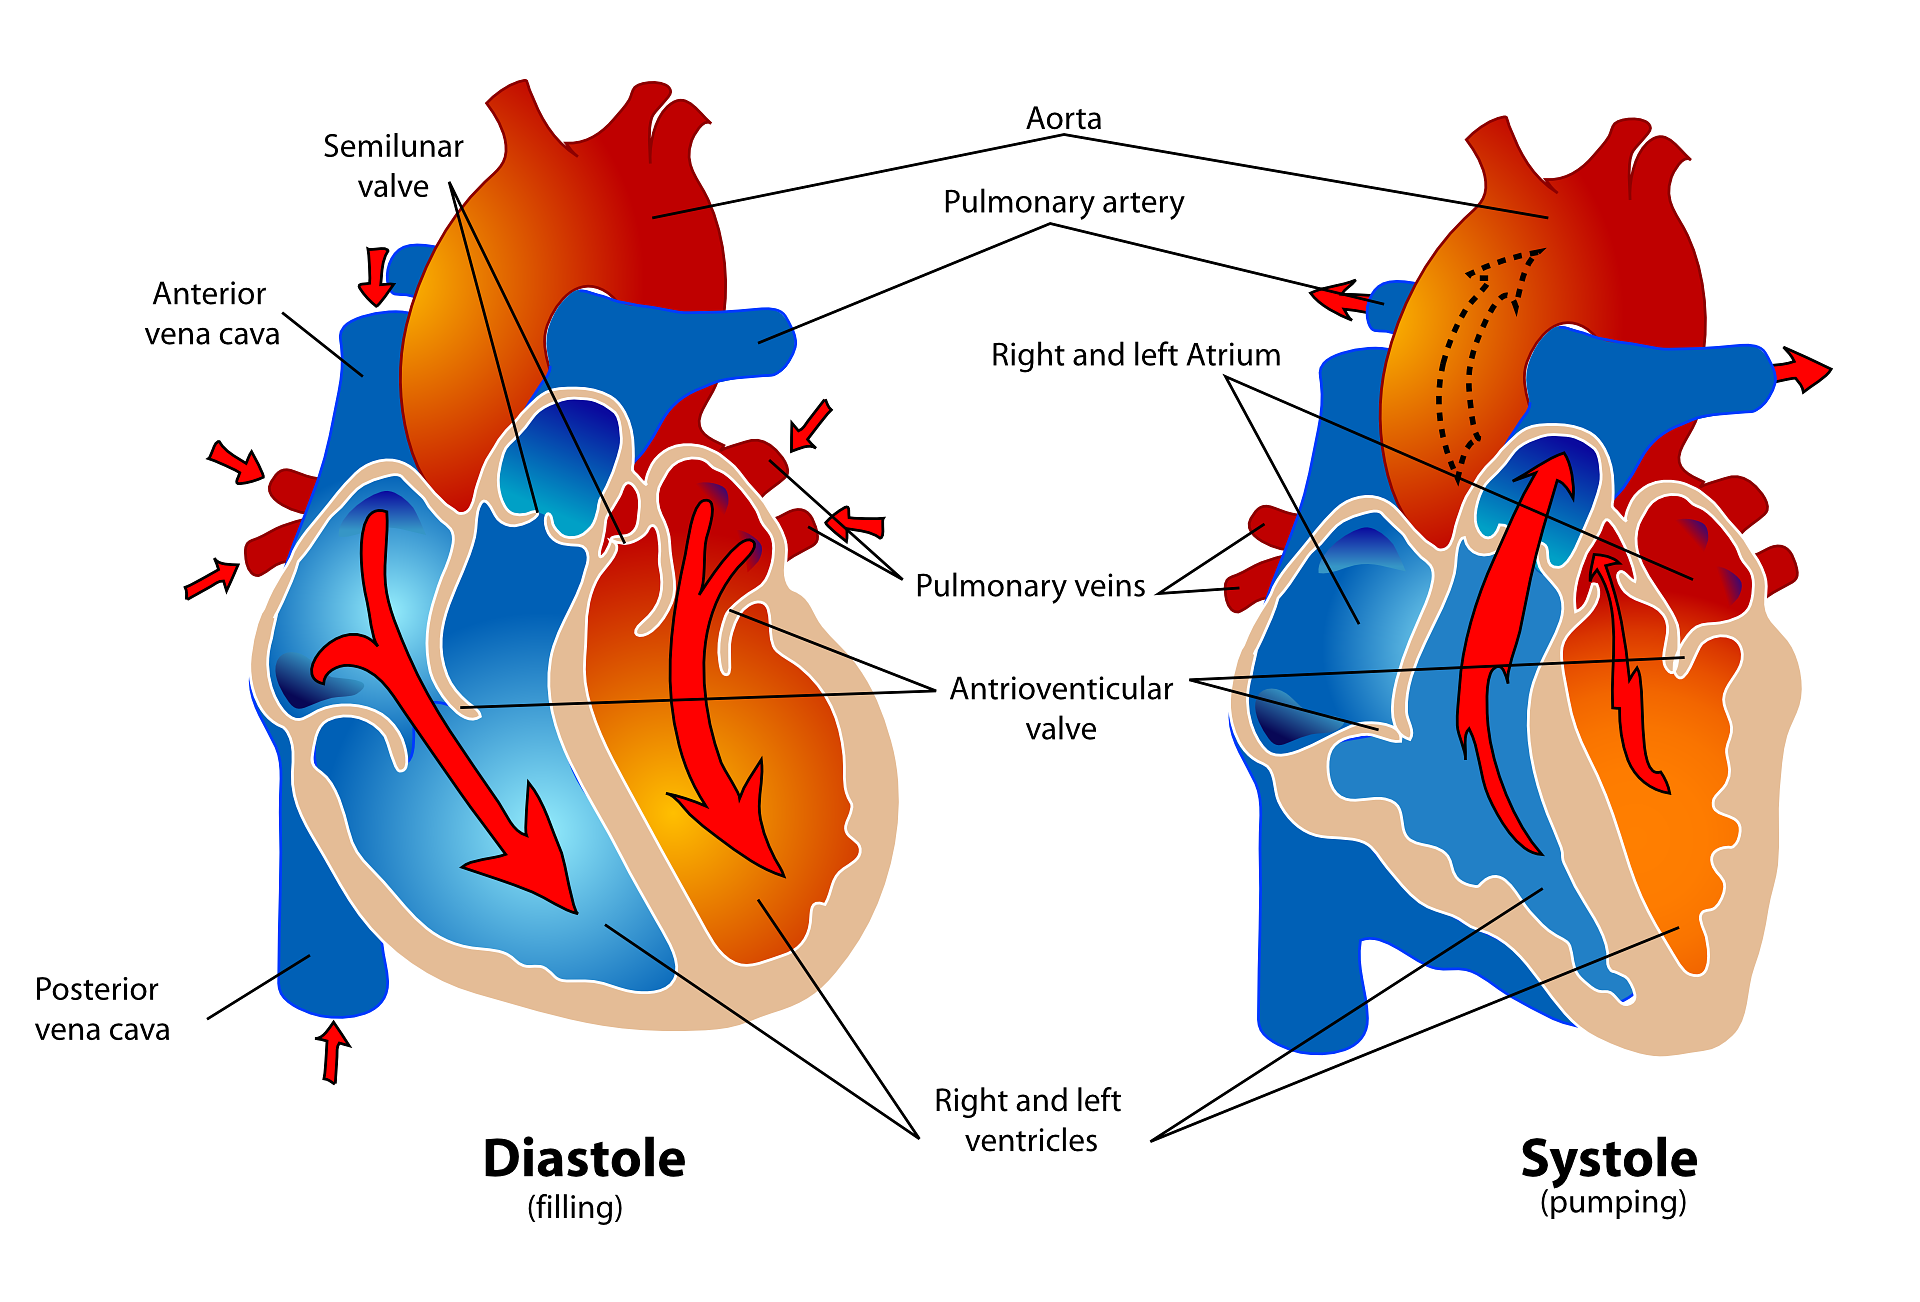 Cardiac cycle systole and diastole